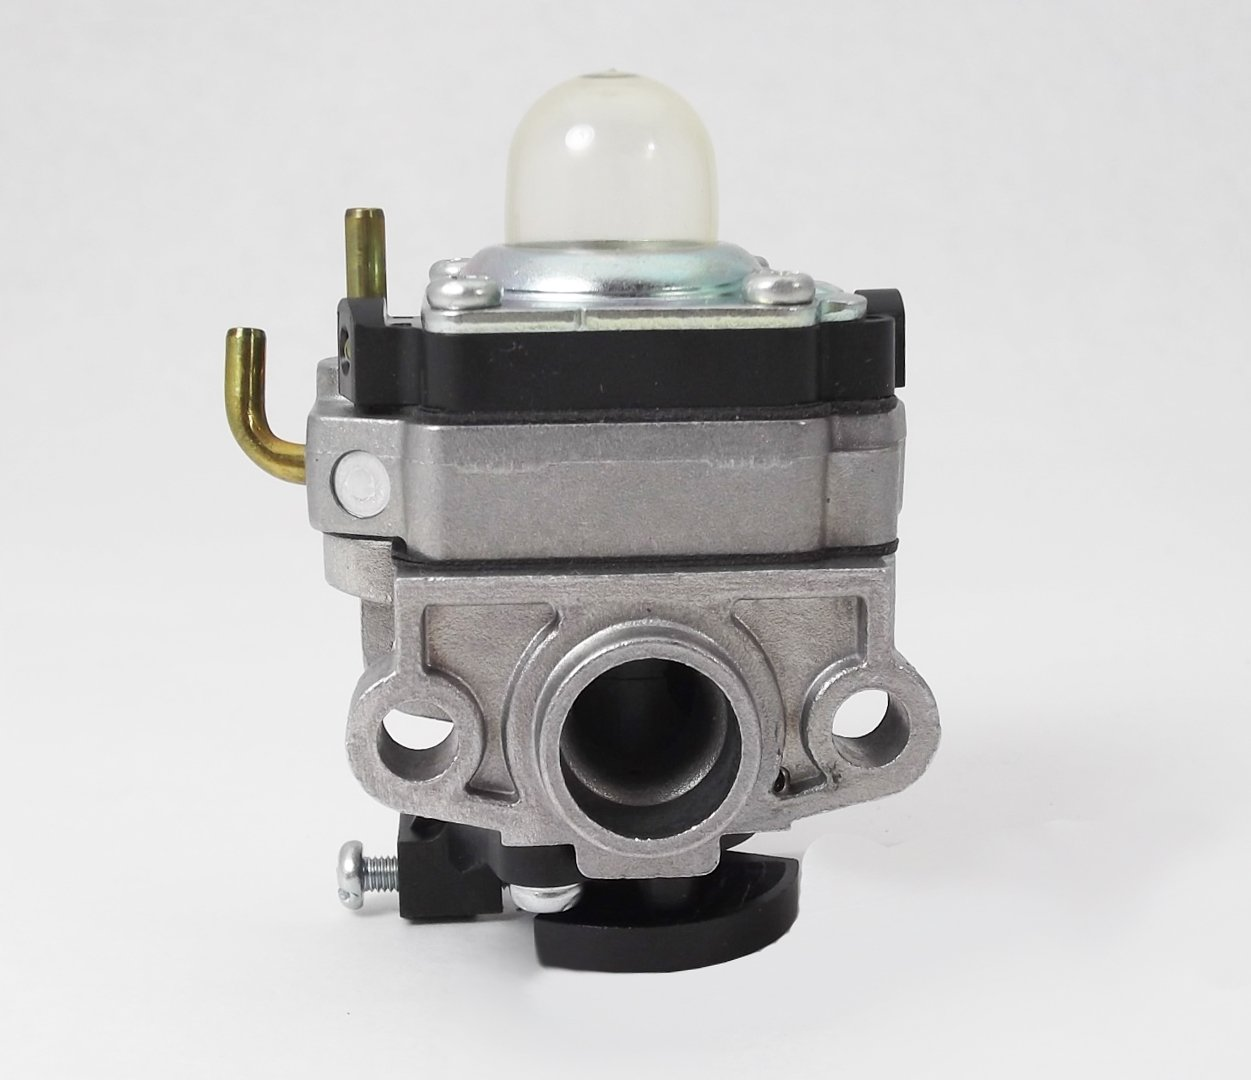 Walbro Carburetor Genuine OEM Wyl-240b Same As the Wyl-240-1 Replaces Wyl-196, Mtd, Ryobi, MTD Trimmer by Walbro WYL 240b